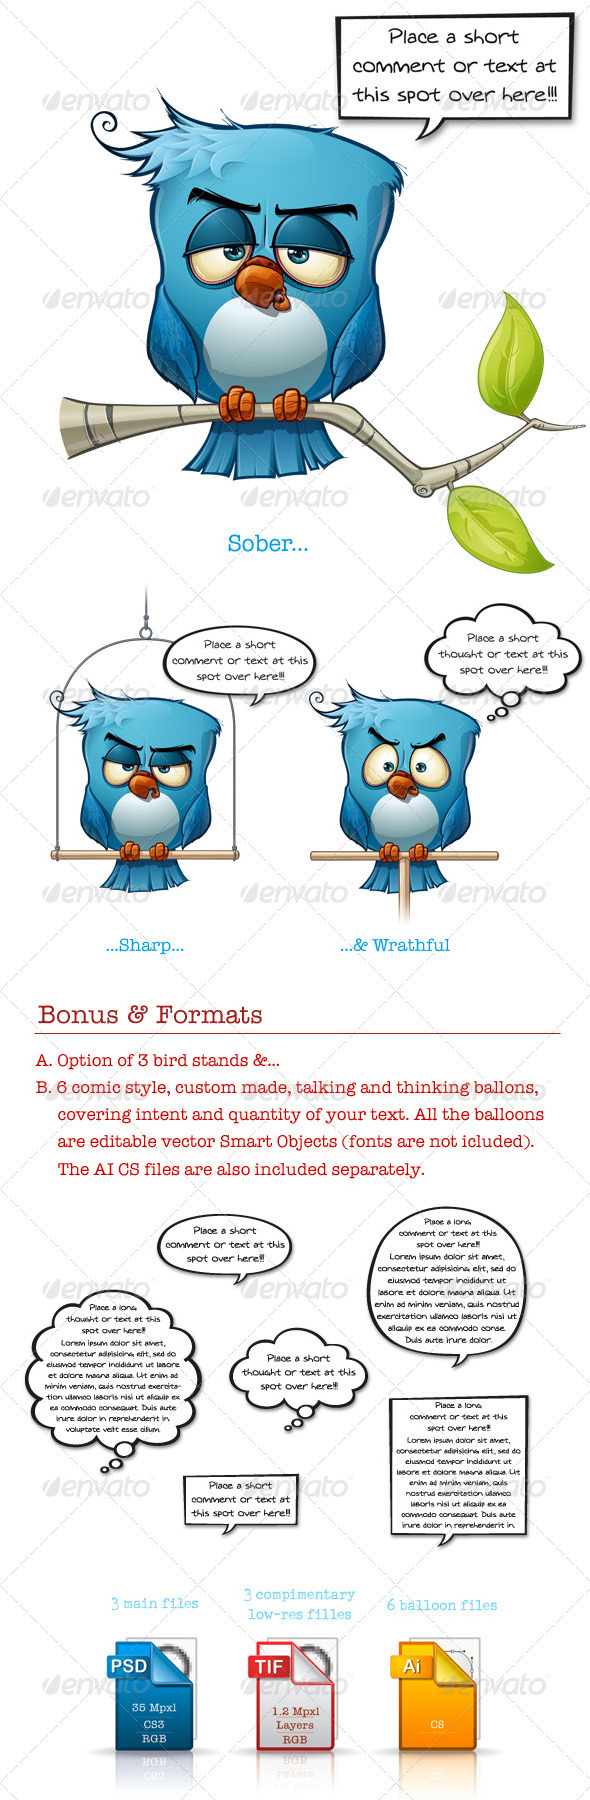 GraphicRiver Blue Bird Sober-Sharp-Wrathful 3501949